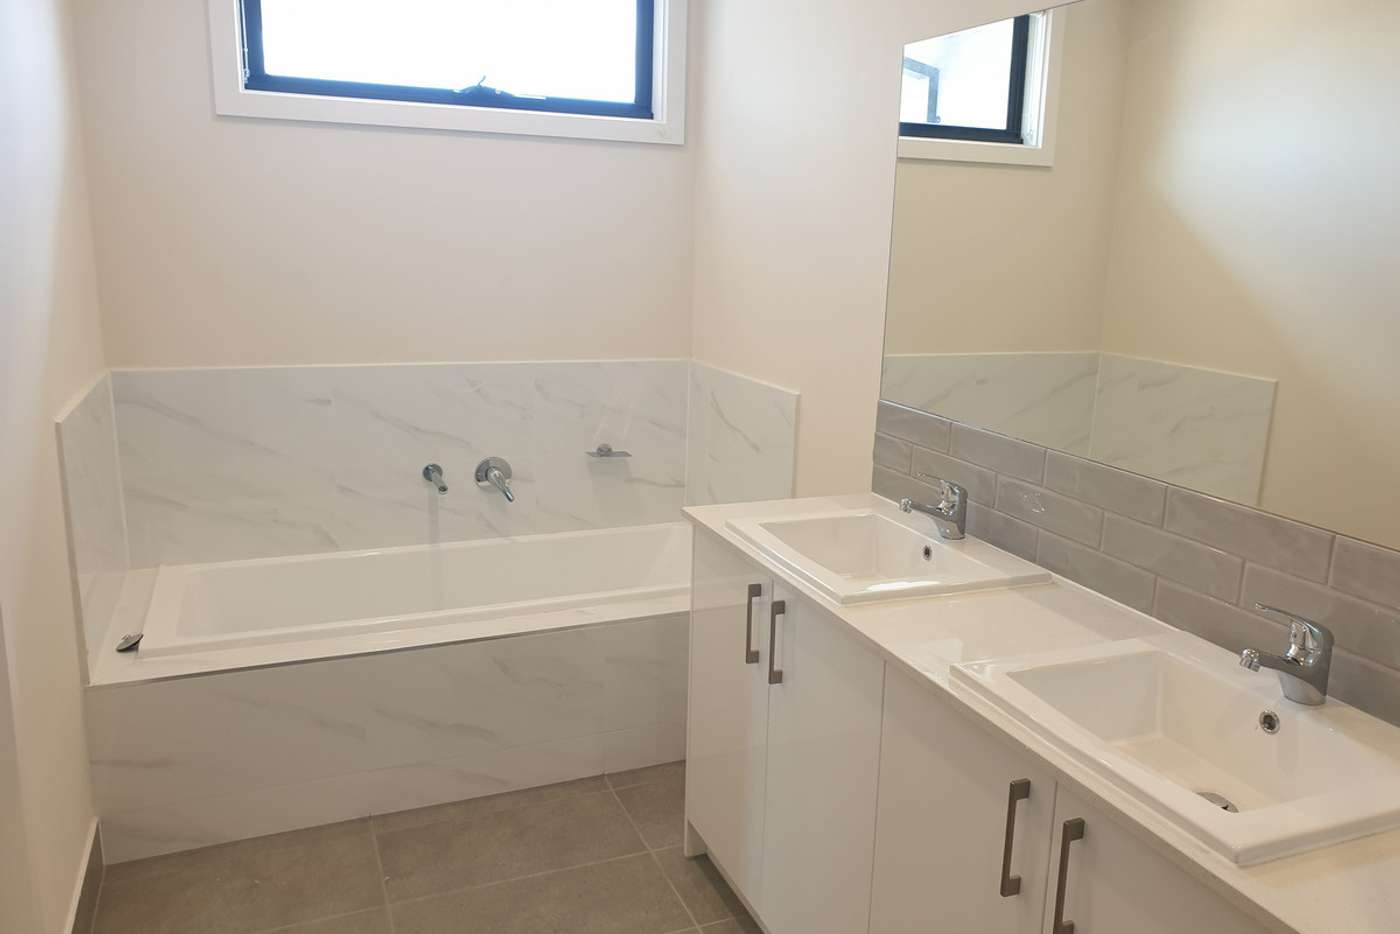 Seventh view of Homely townhouse listing, 2/16 Edith Street, Dandenong VIC 3175